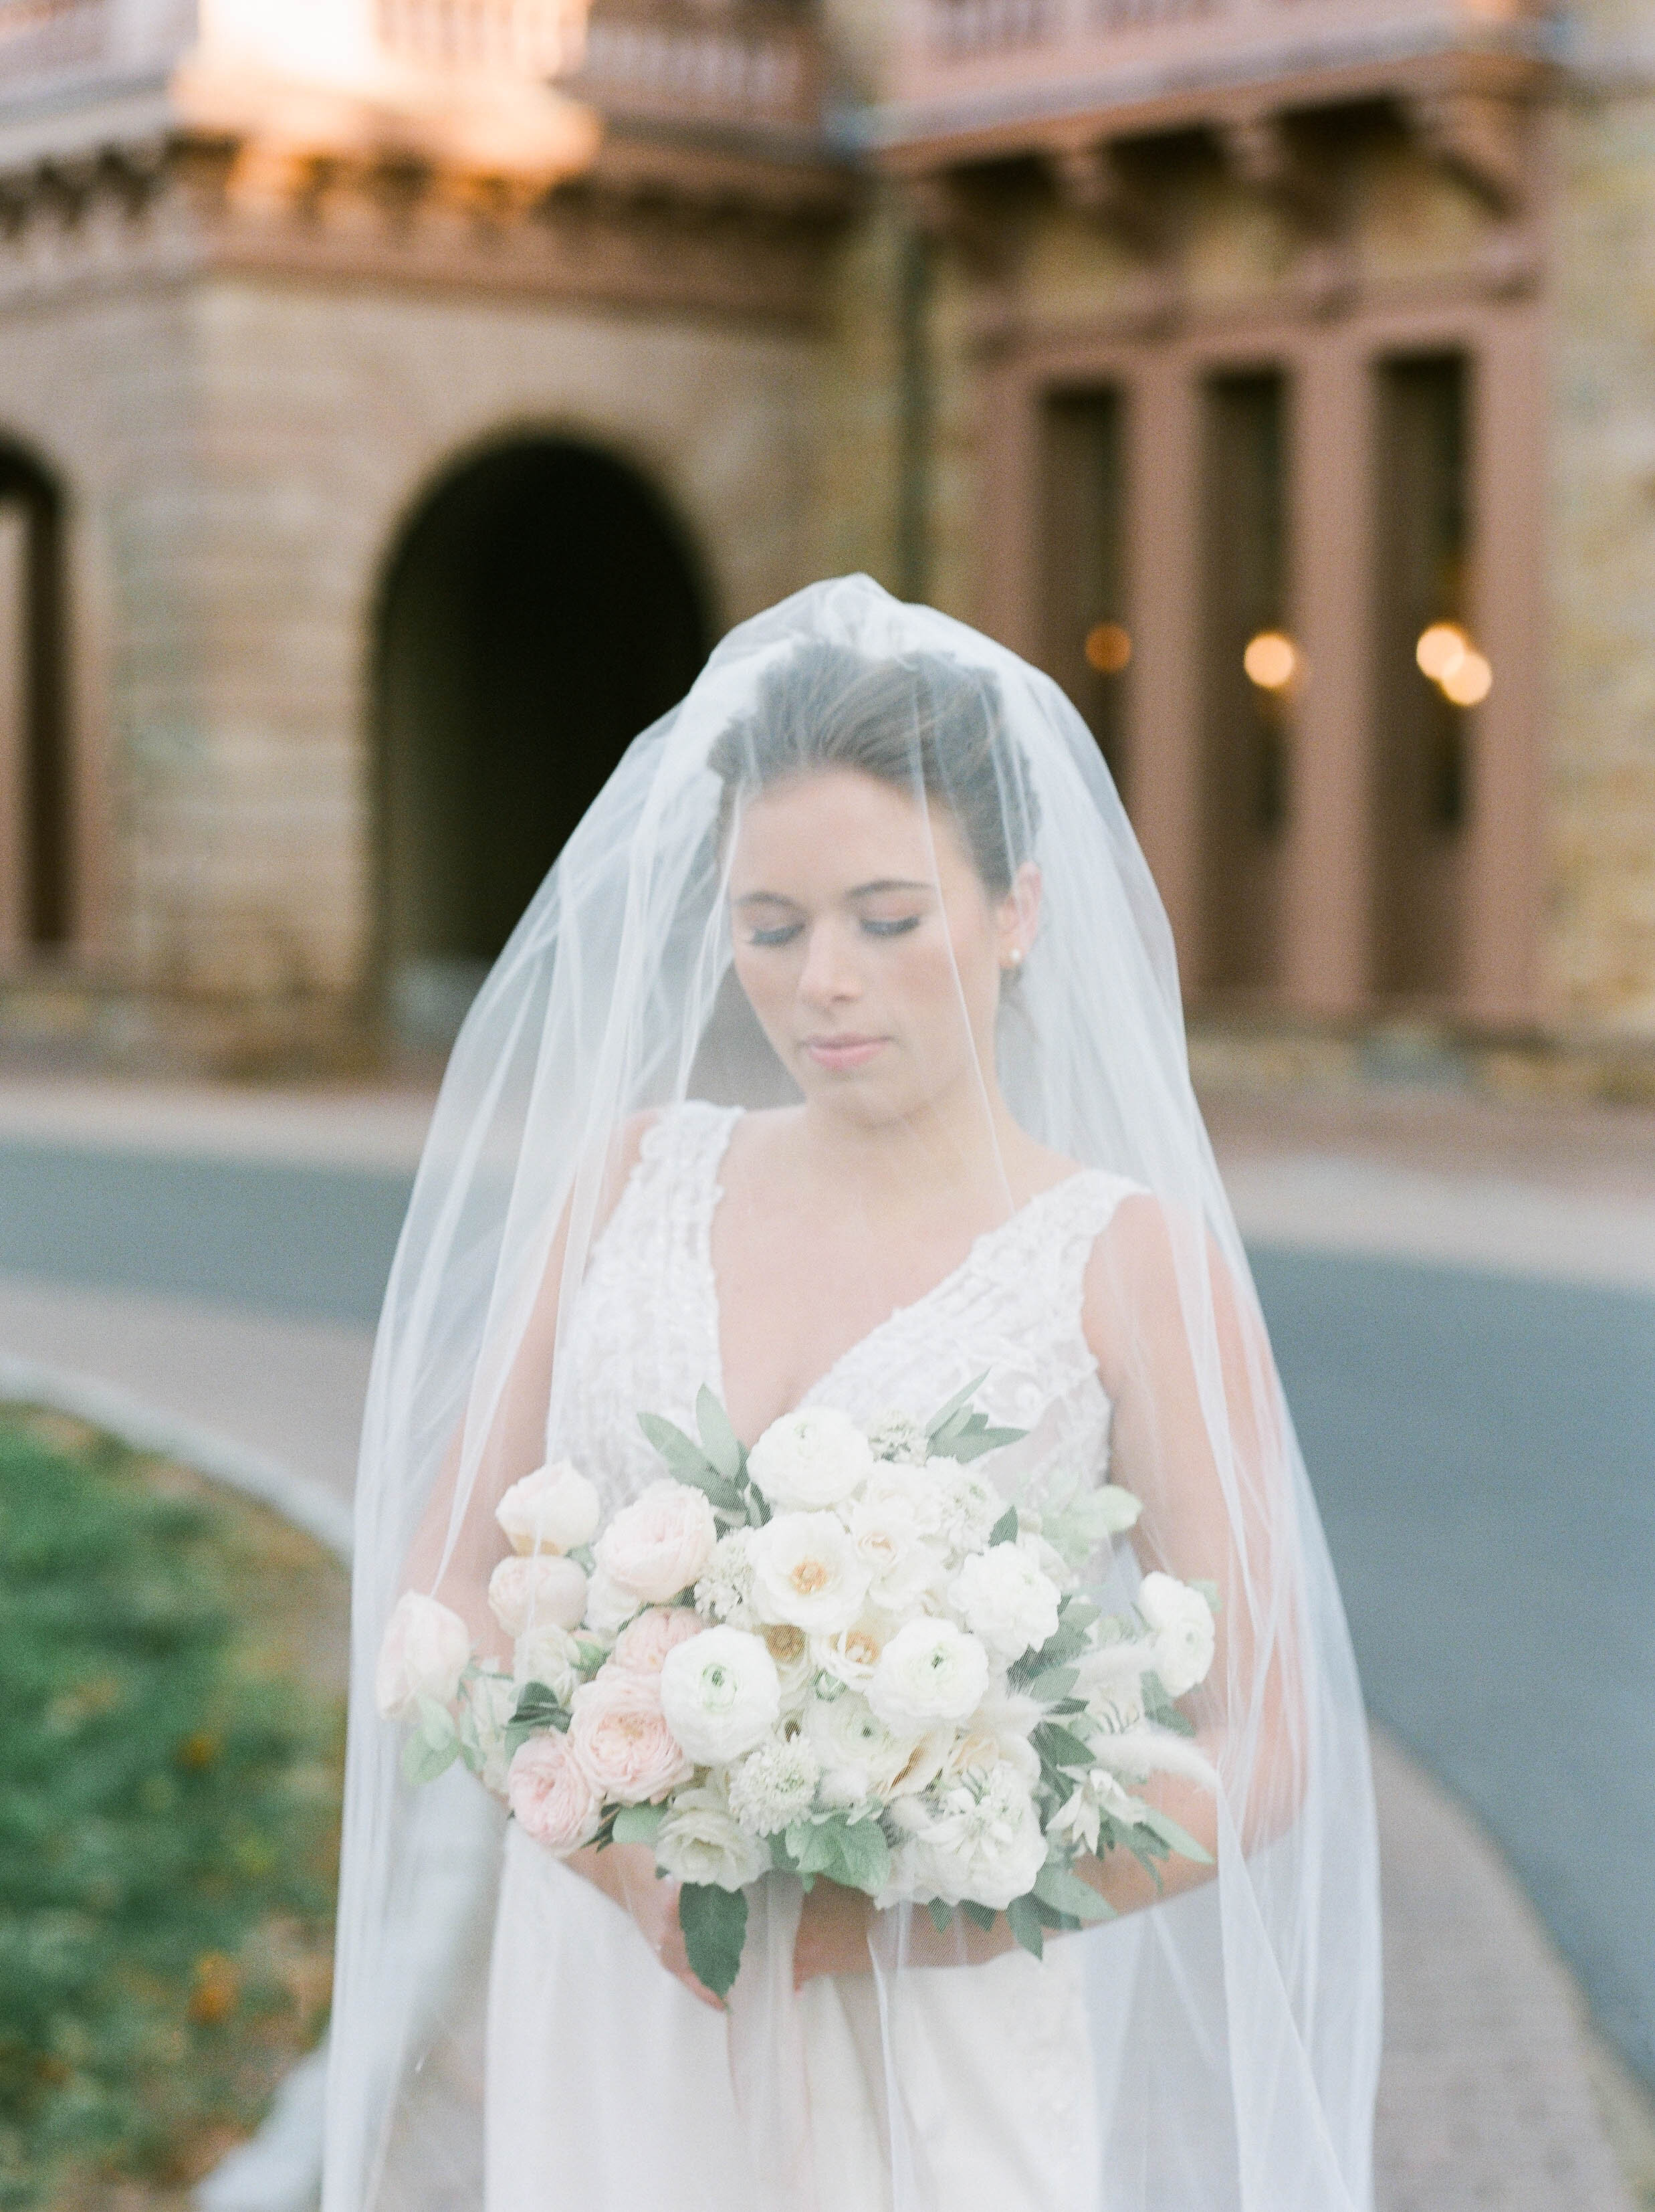 Fine Art Bride Editorial at Princeton University featured on Glittery Bride with Justin Alexander wedding gown, veil, and bridal bouquet